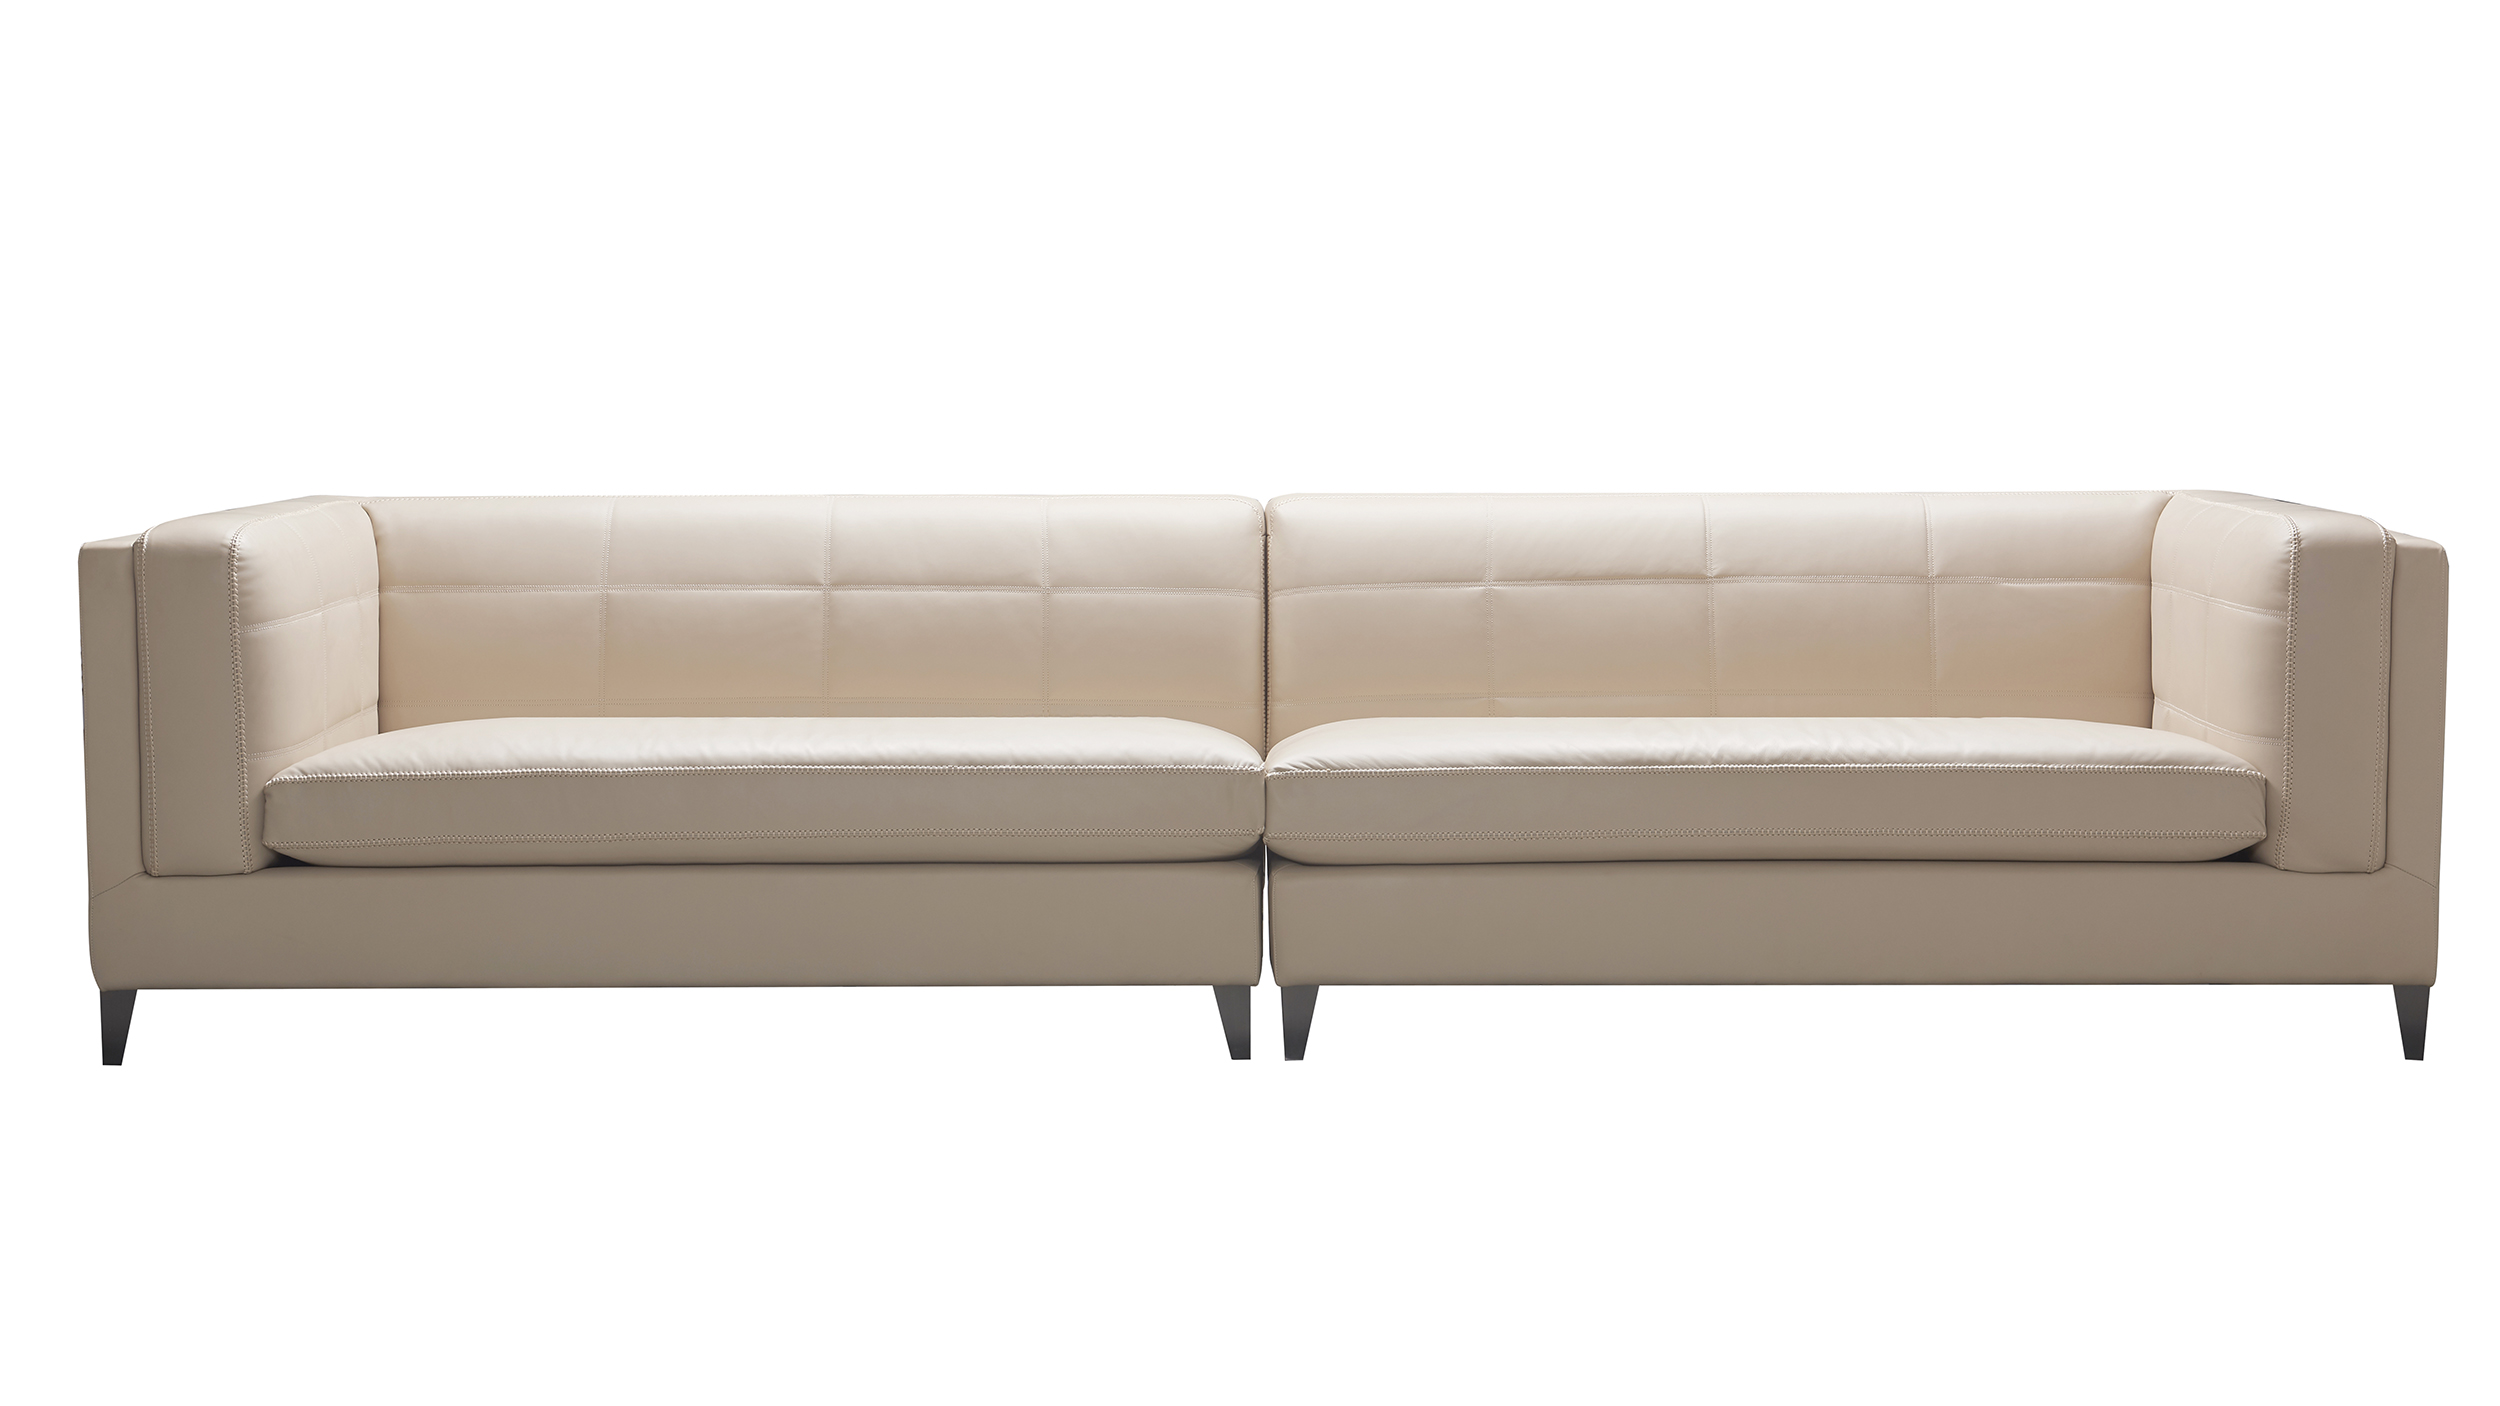 esquire 119 top grain leather 4 seater sectional sofa fawn beige